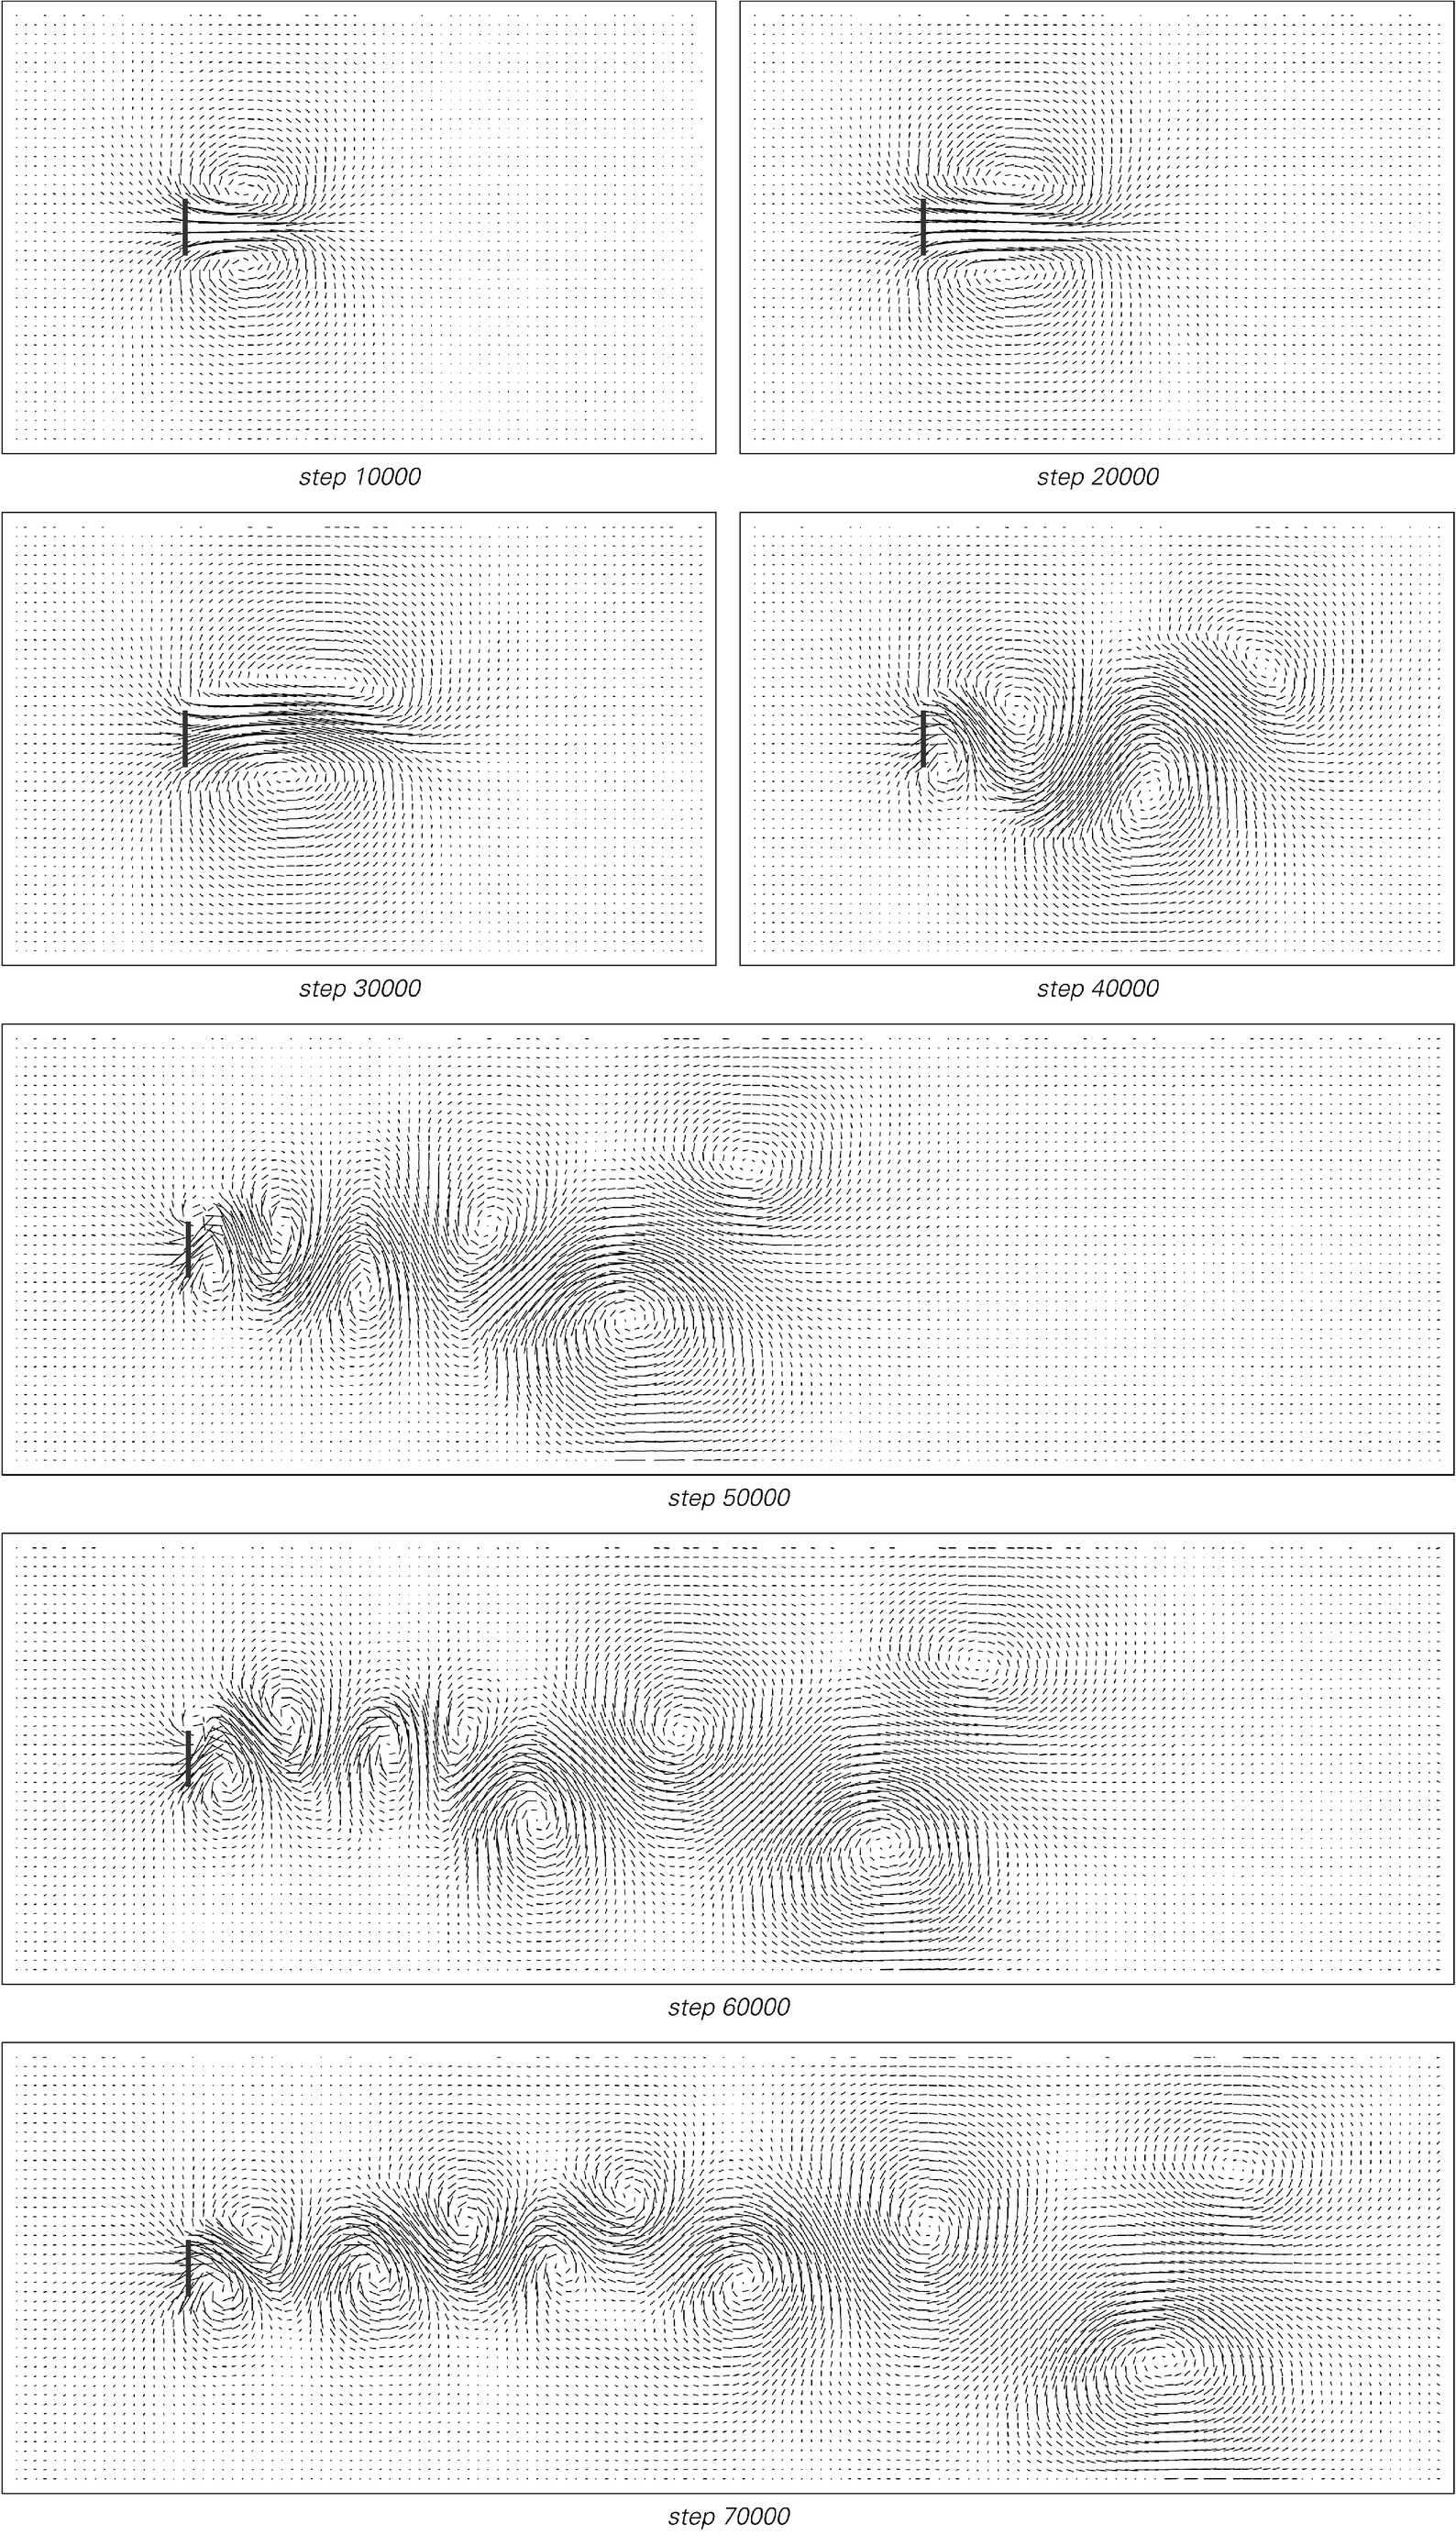 Larger example of cellular automaton system shown on previous page